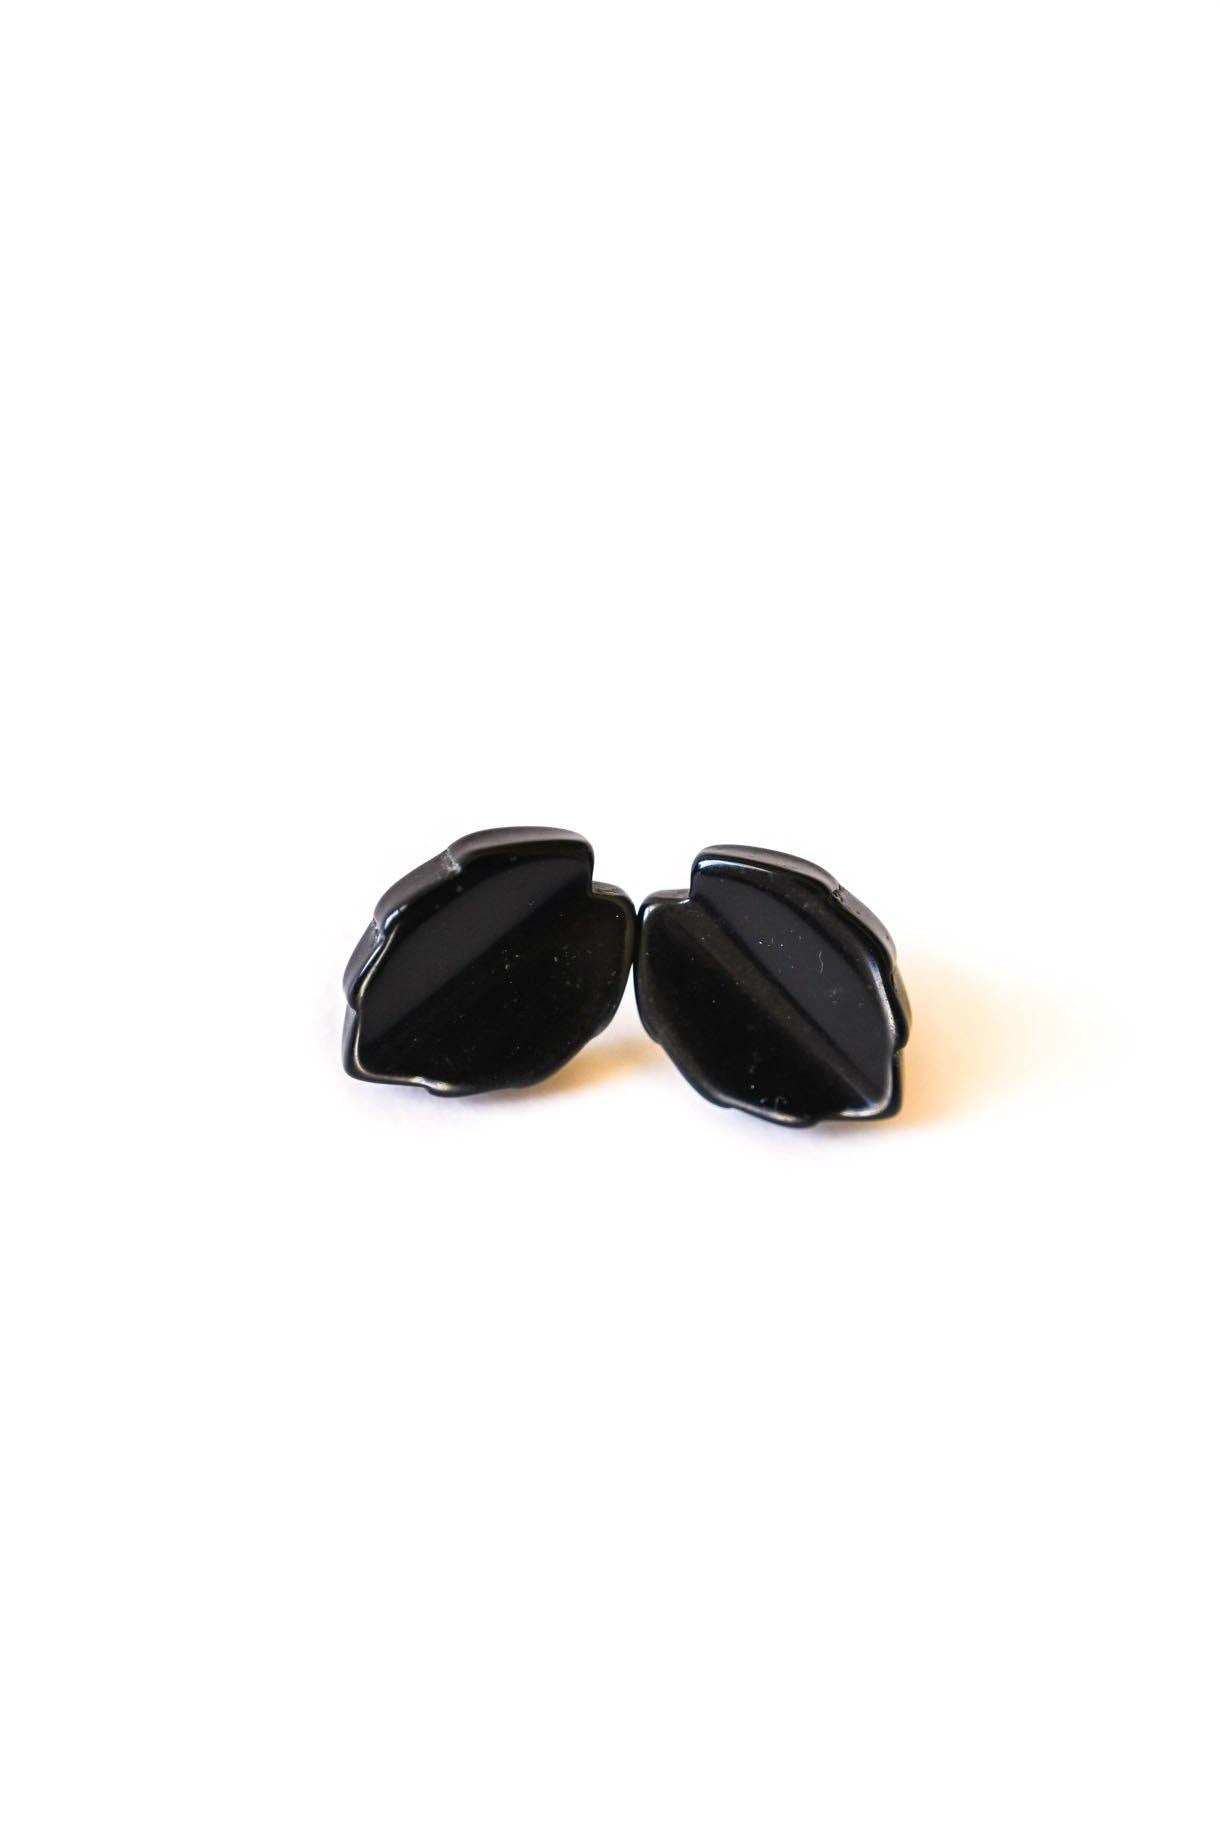 Black Leaf Pierced Earrings